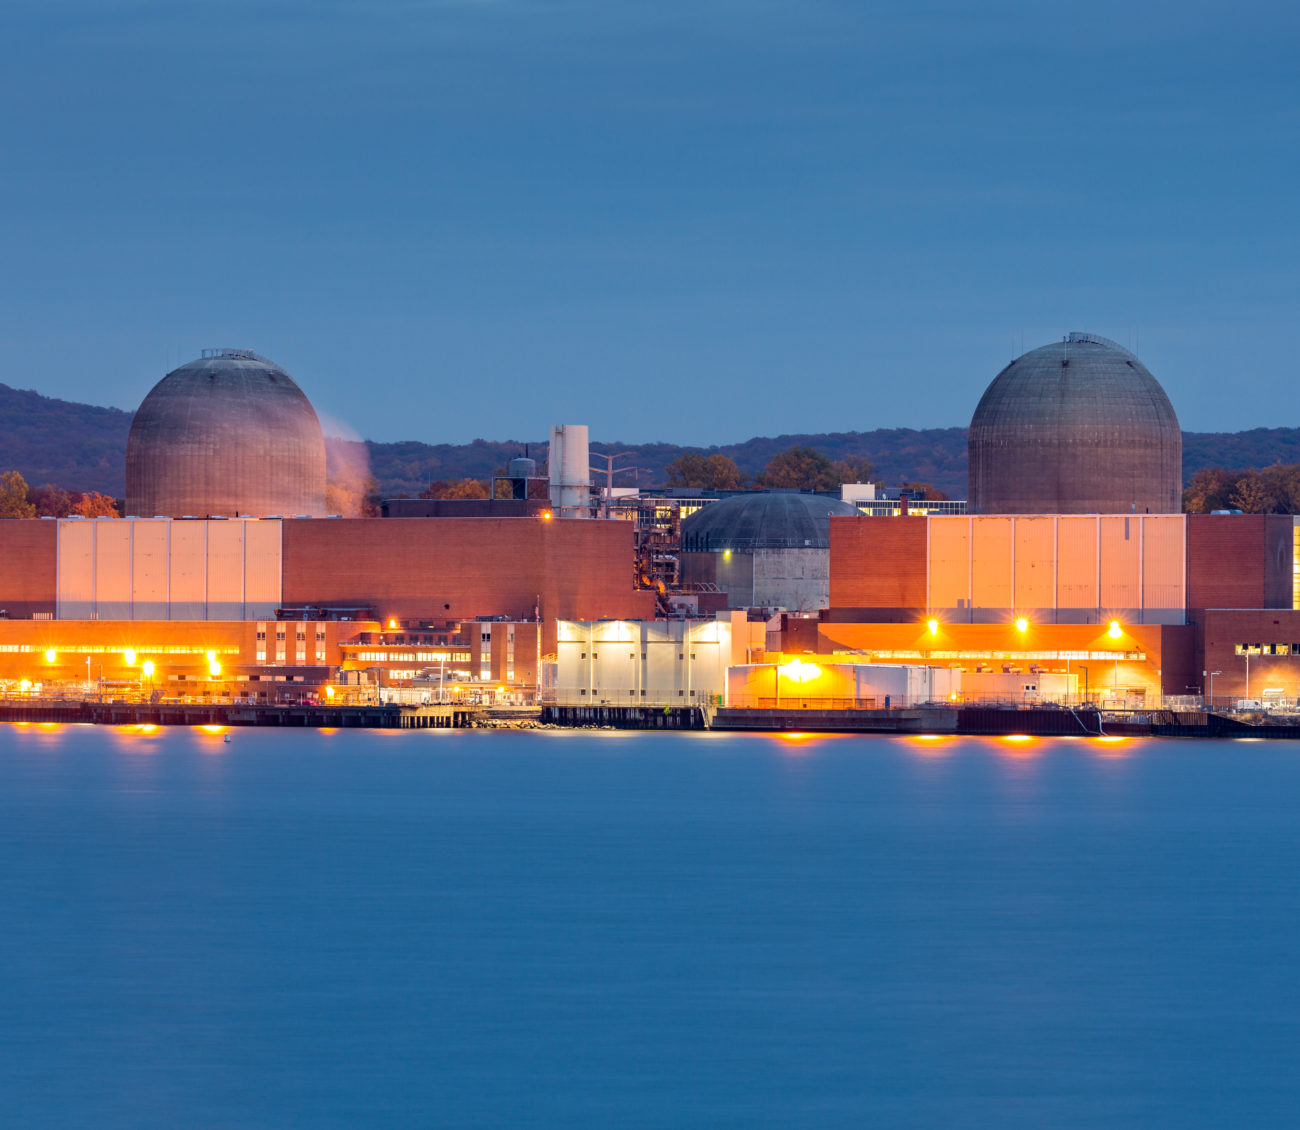 Workshop on Maintaining Effective Security during the Decommissioning of Nuclear Facilities